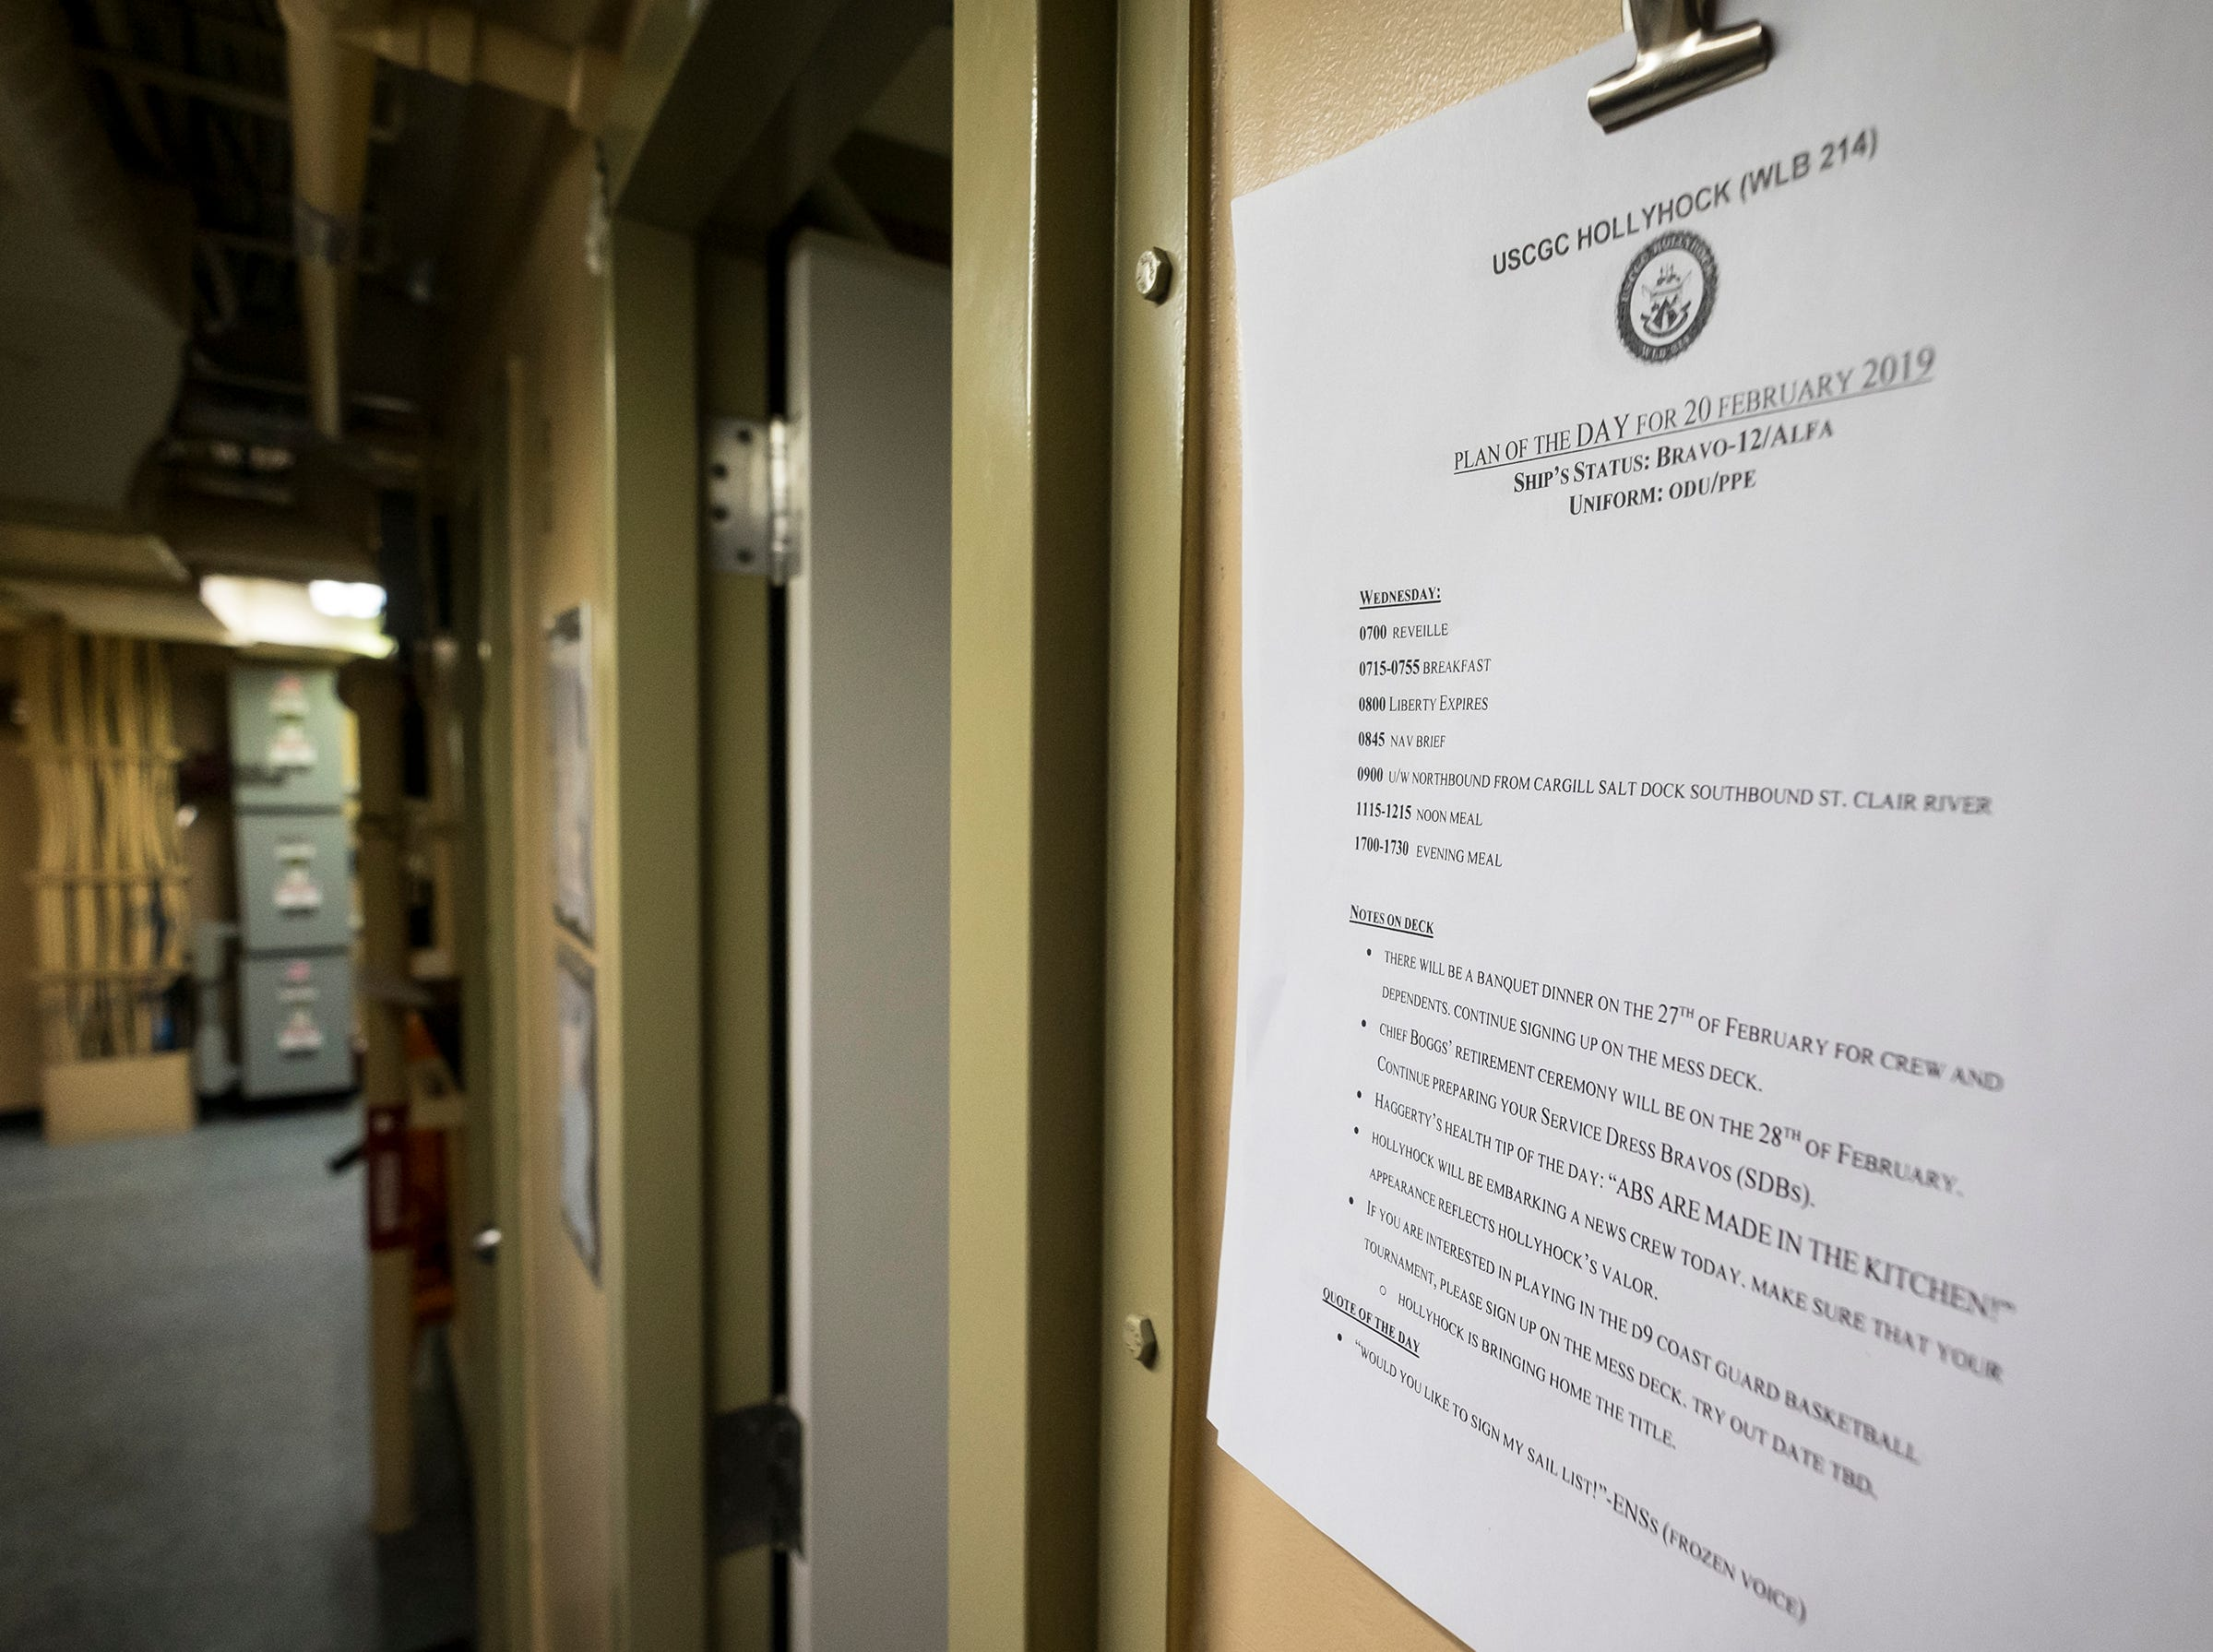 A plan outlining the day's objectives hangs outside one of the offices on one of the Hollyhock's lower decks.